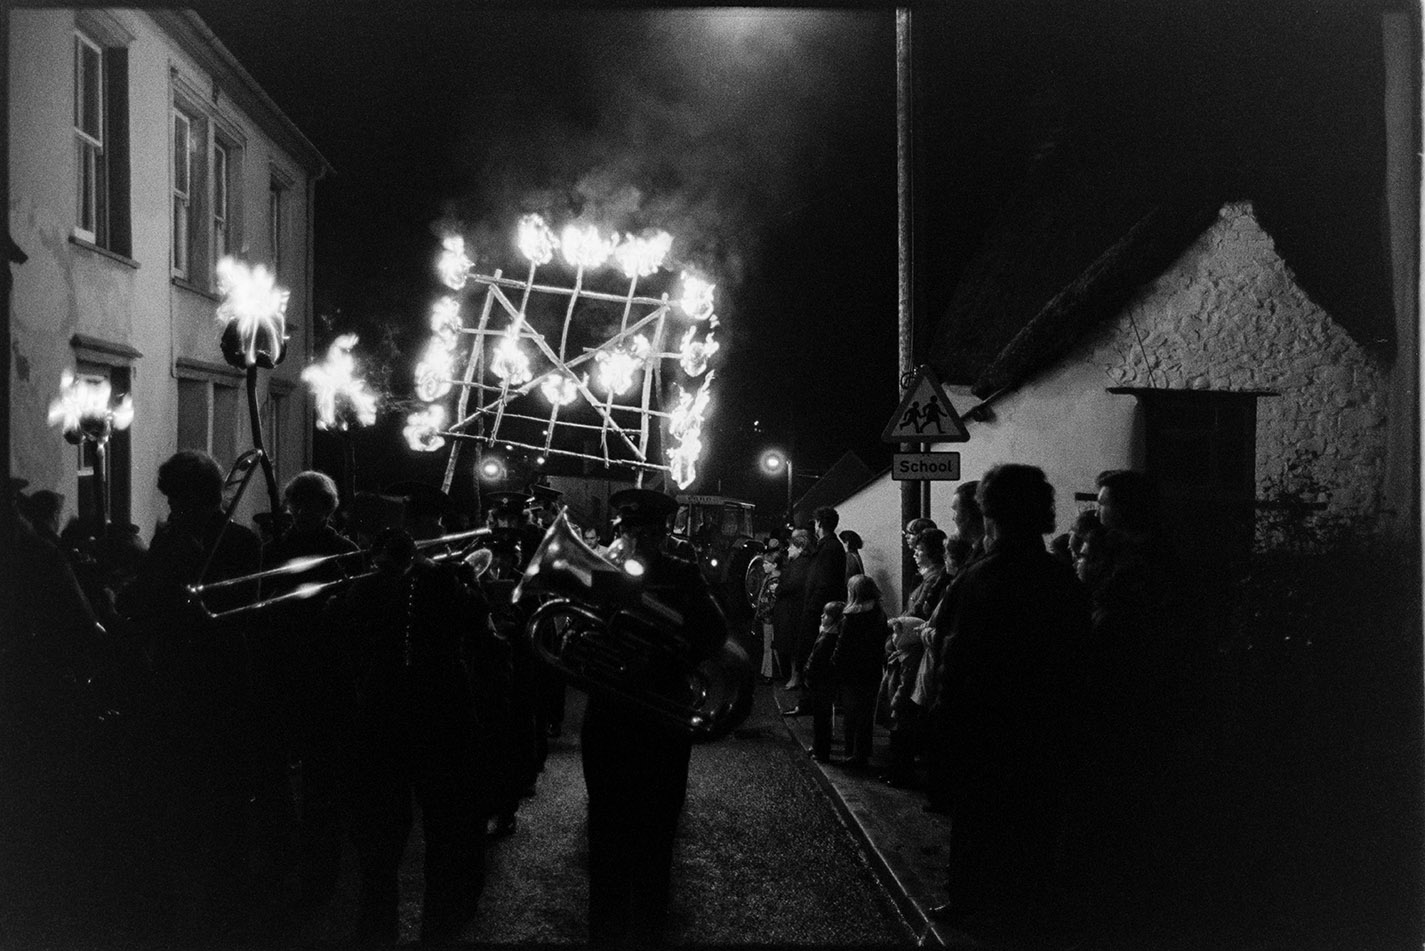 Carnival procession at night with burning torches, Hatherleigh, 6 November 1974